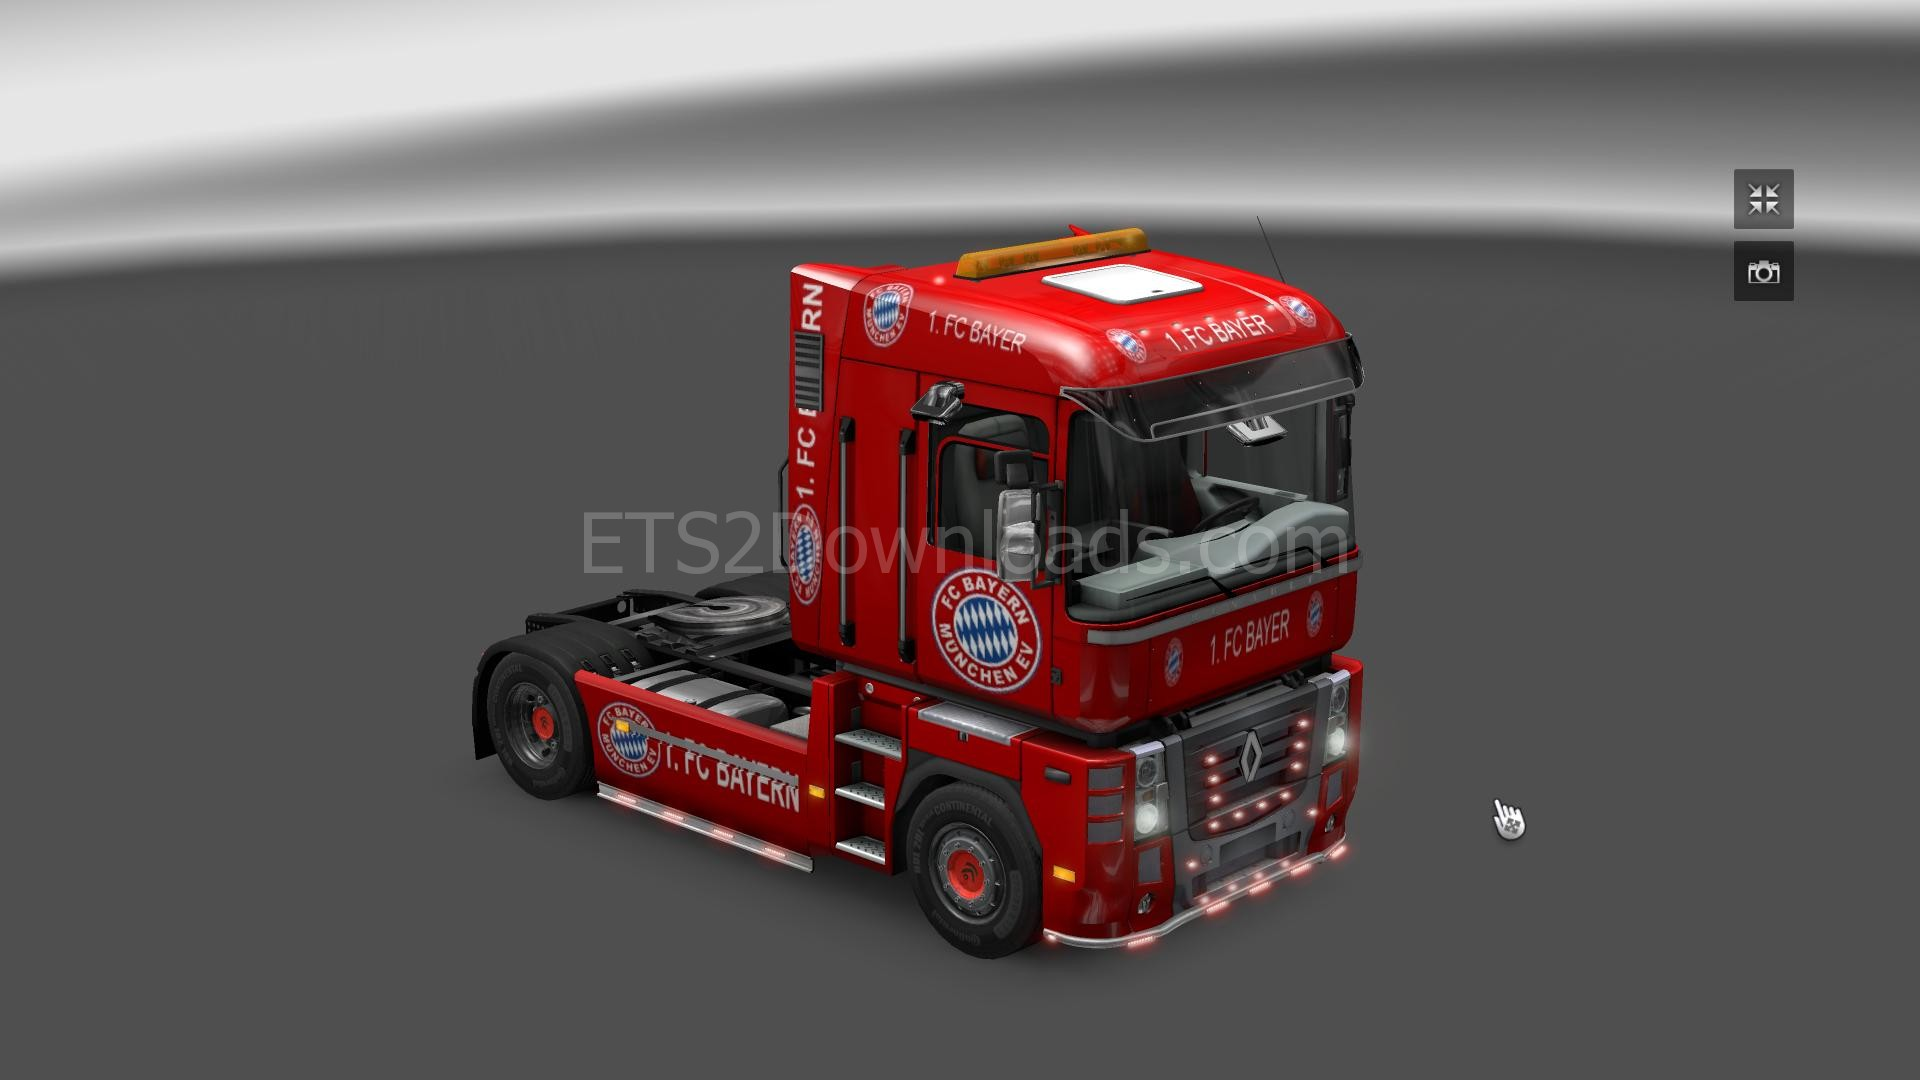 bayern-munich-skin-for-renault-ets2-2